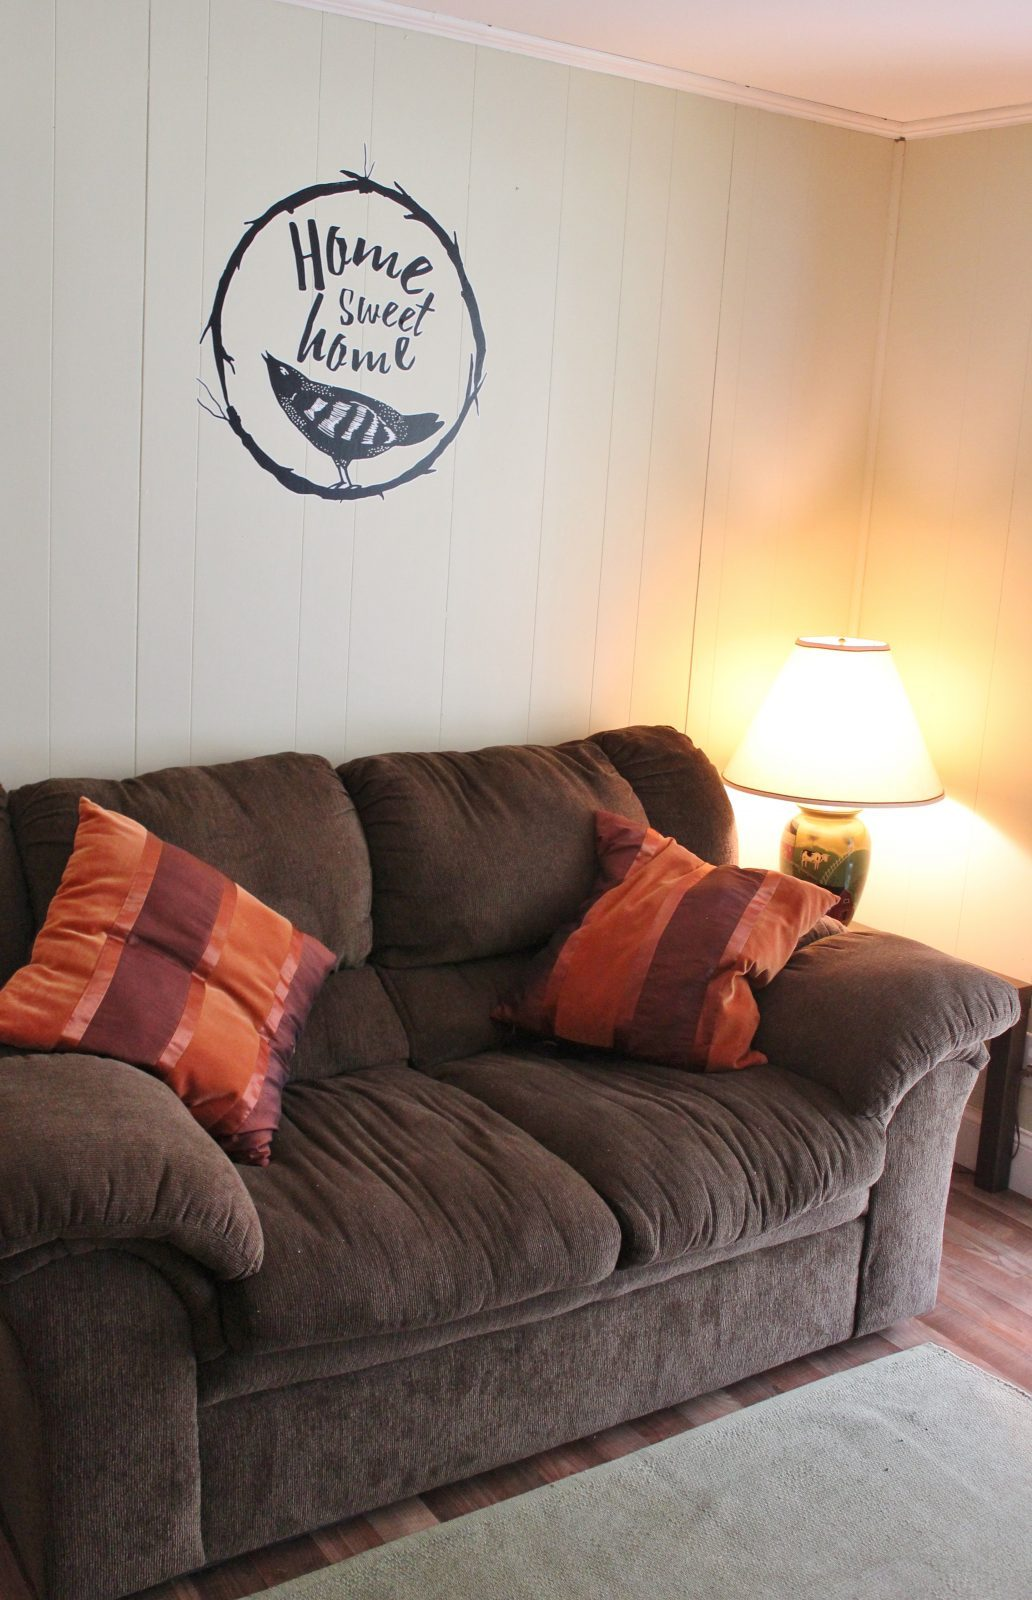 home sweet home decal over love seat